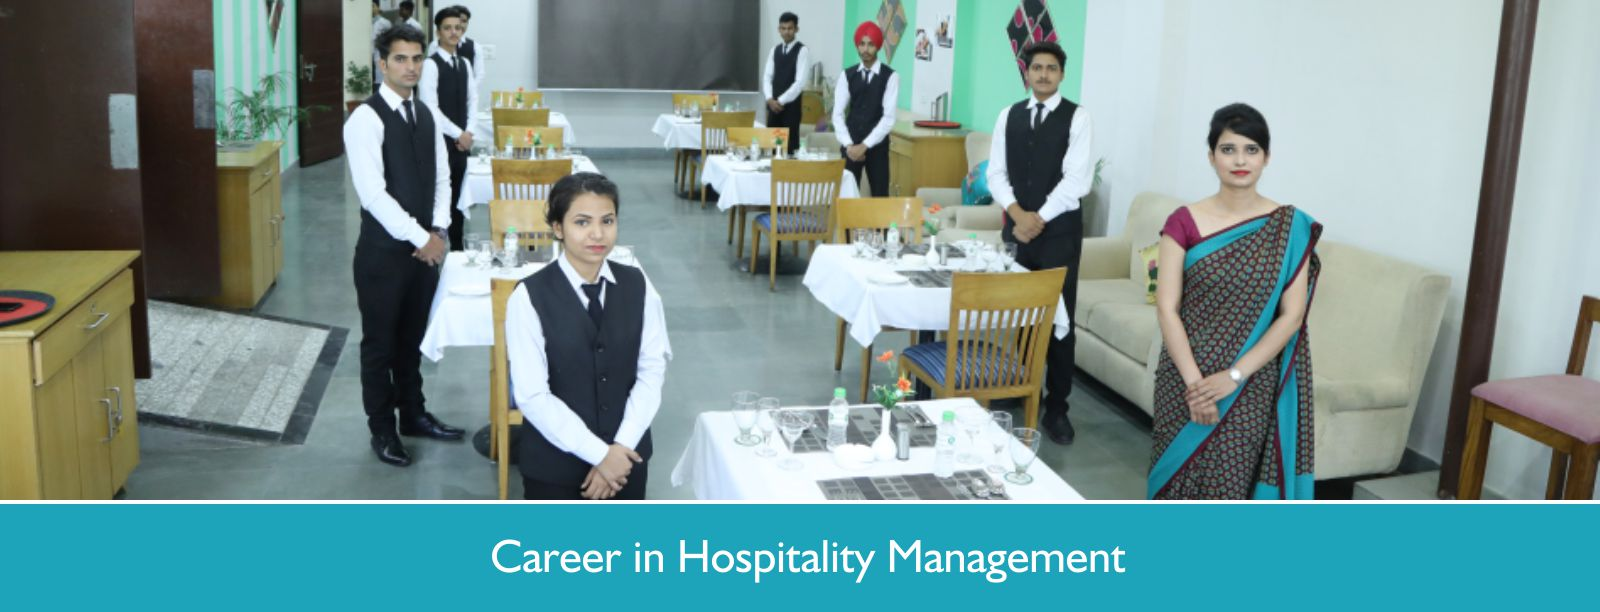 Career in Hospitality Management